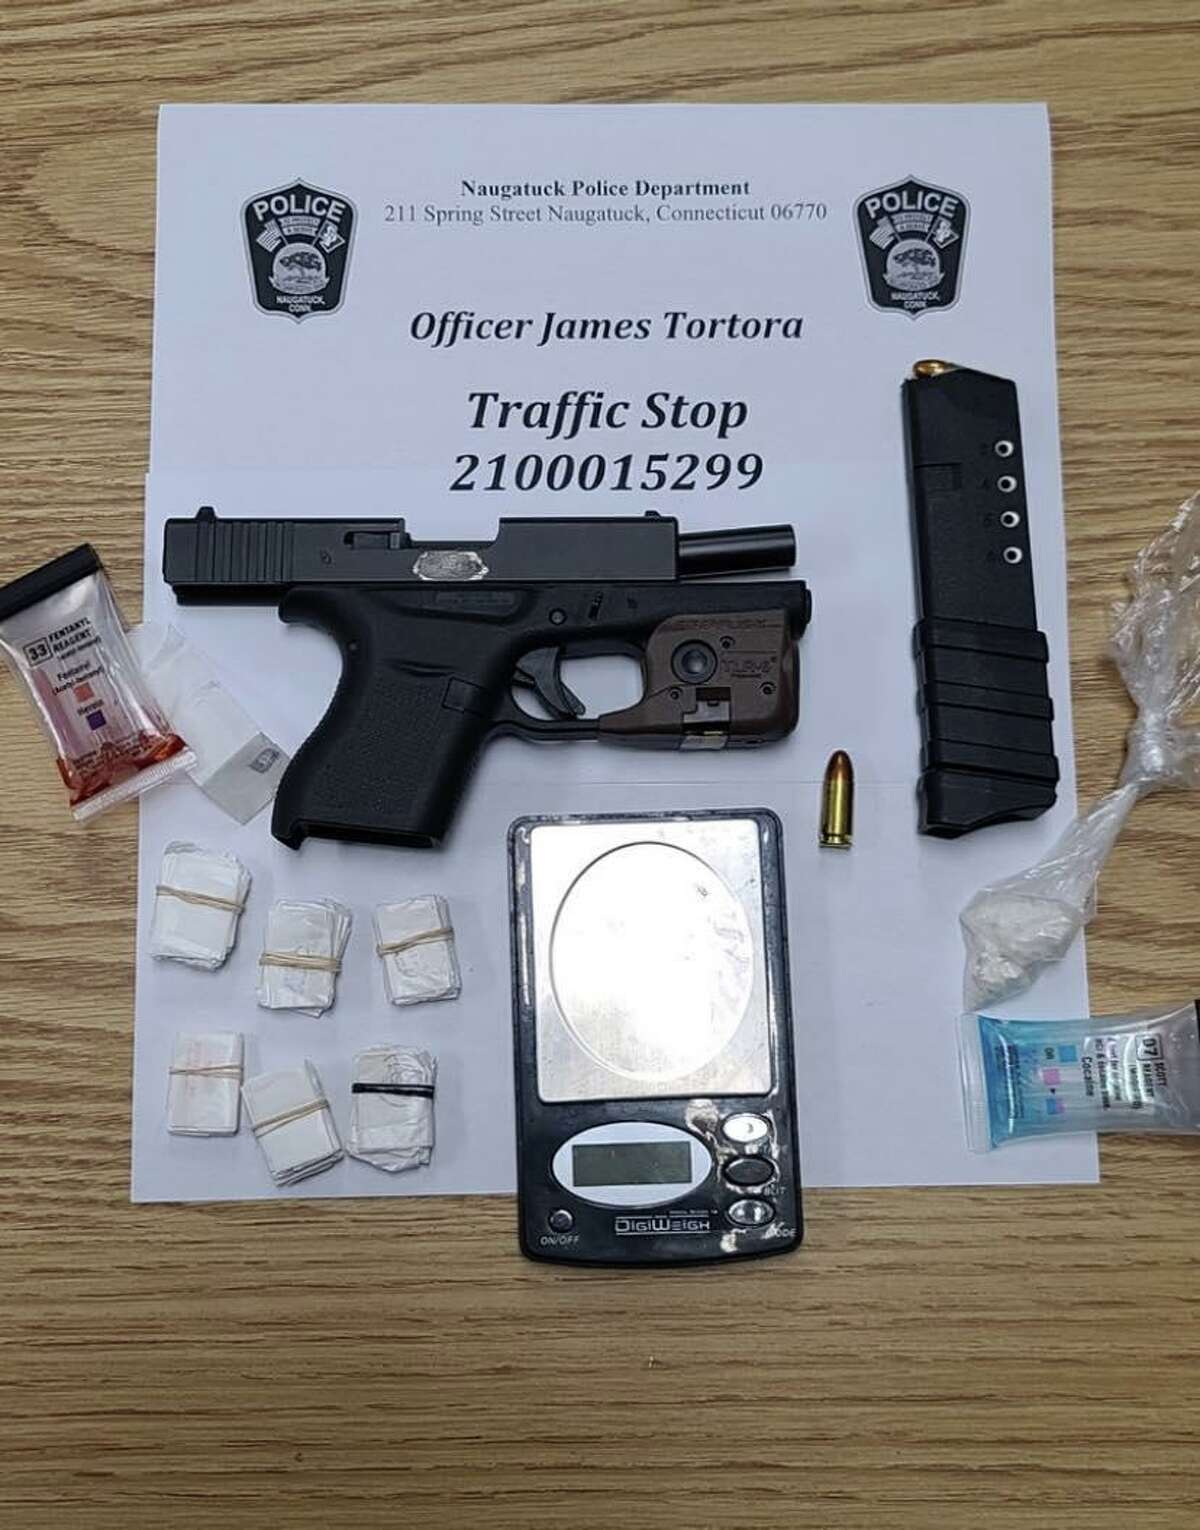 Police said investigators found a Glock pistol with an obliterated serial number, 56 bags of fentanyl and 7.2 grams of crack cocaine in an abandoned vehicle in Waterbury, Conn., after the vehicle fled a traffic stop in Naugatuck.